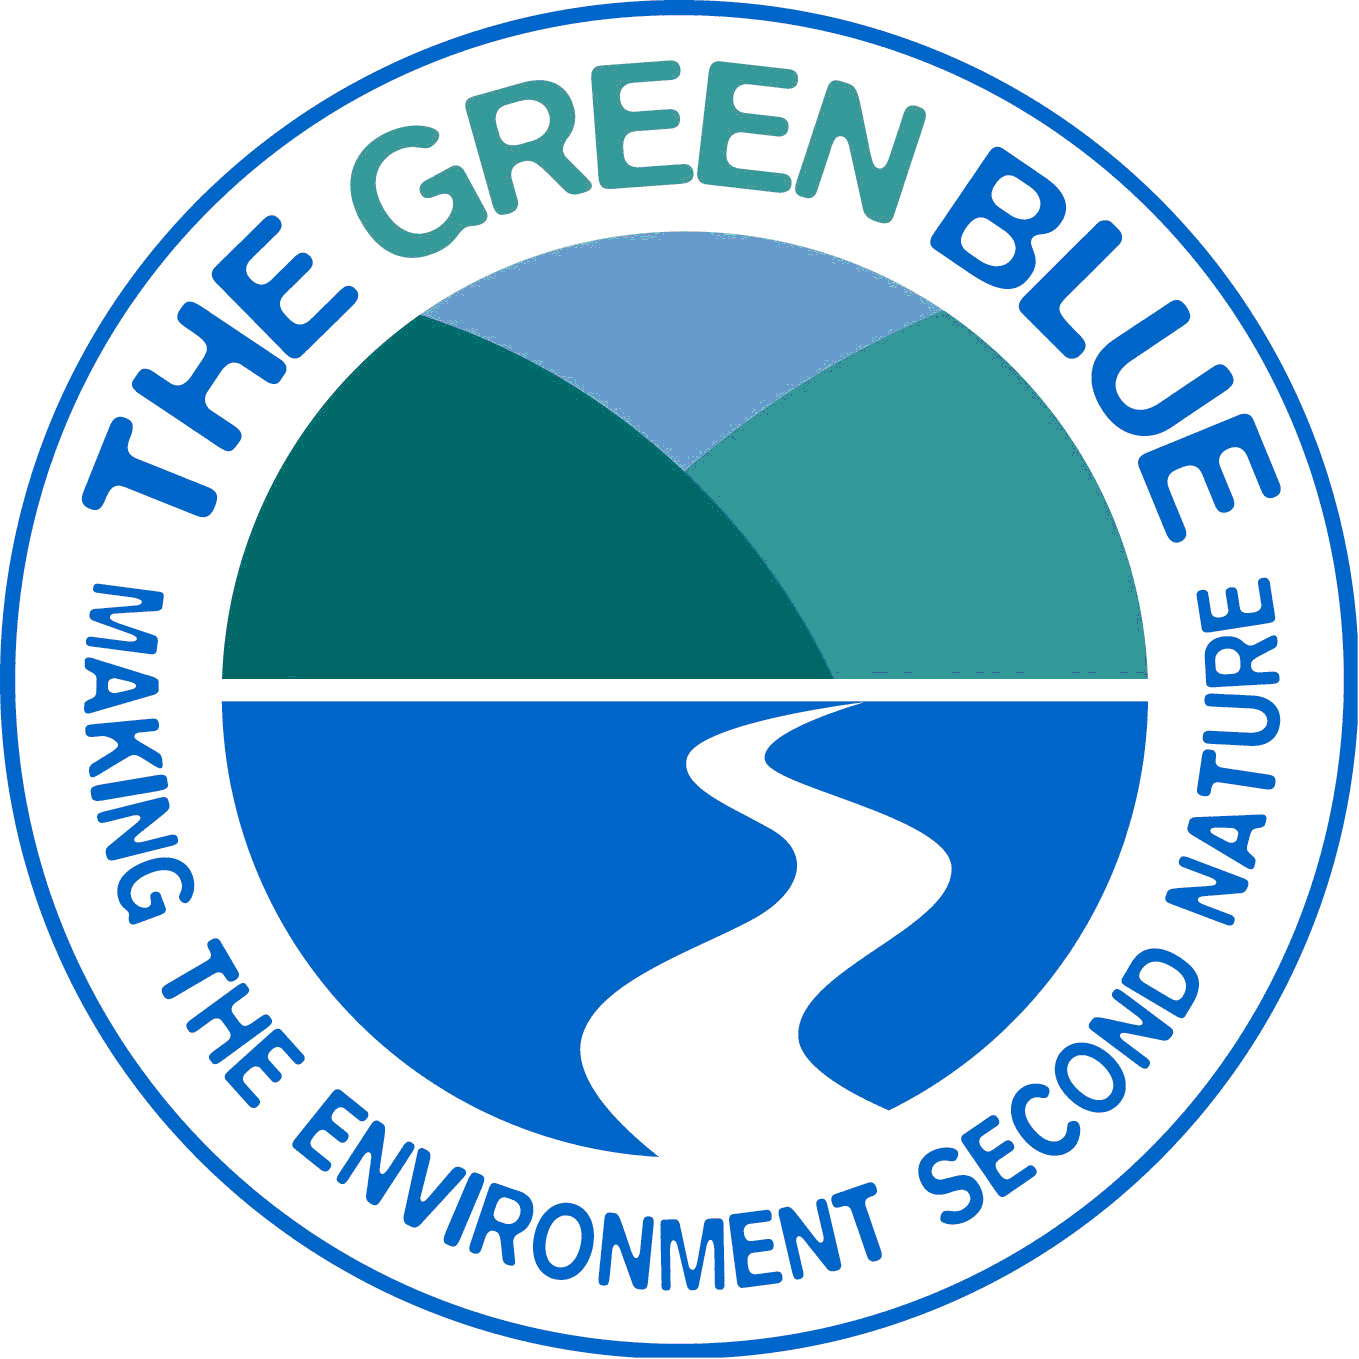 [Member News] The Green Blue to exhibit at the first ever Green Tech Boat Show this June